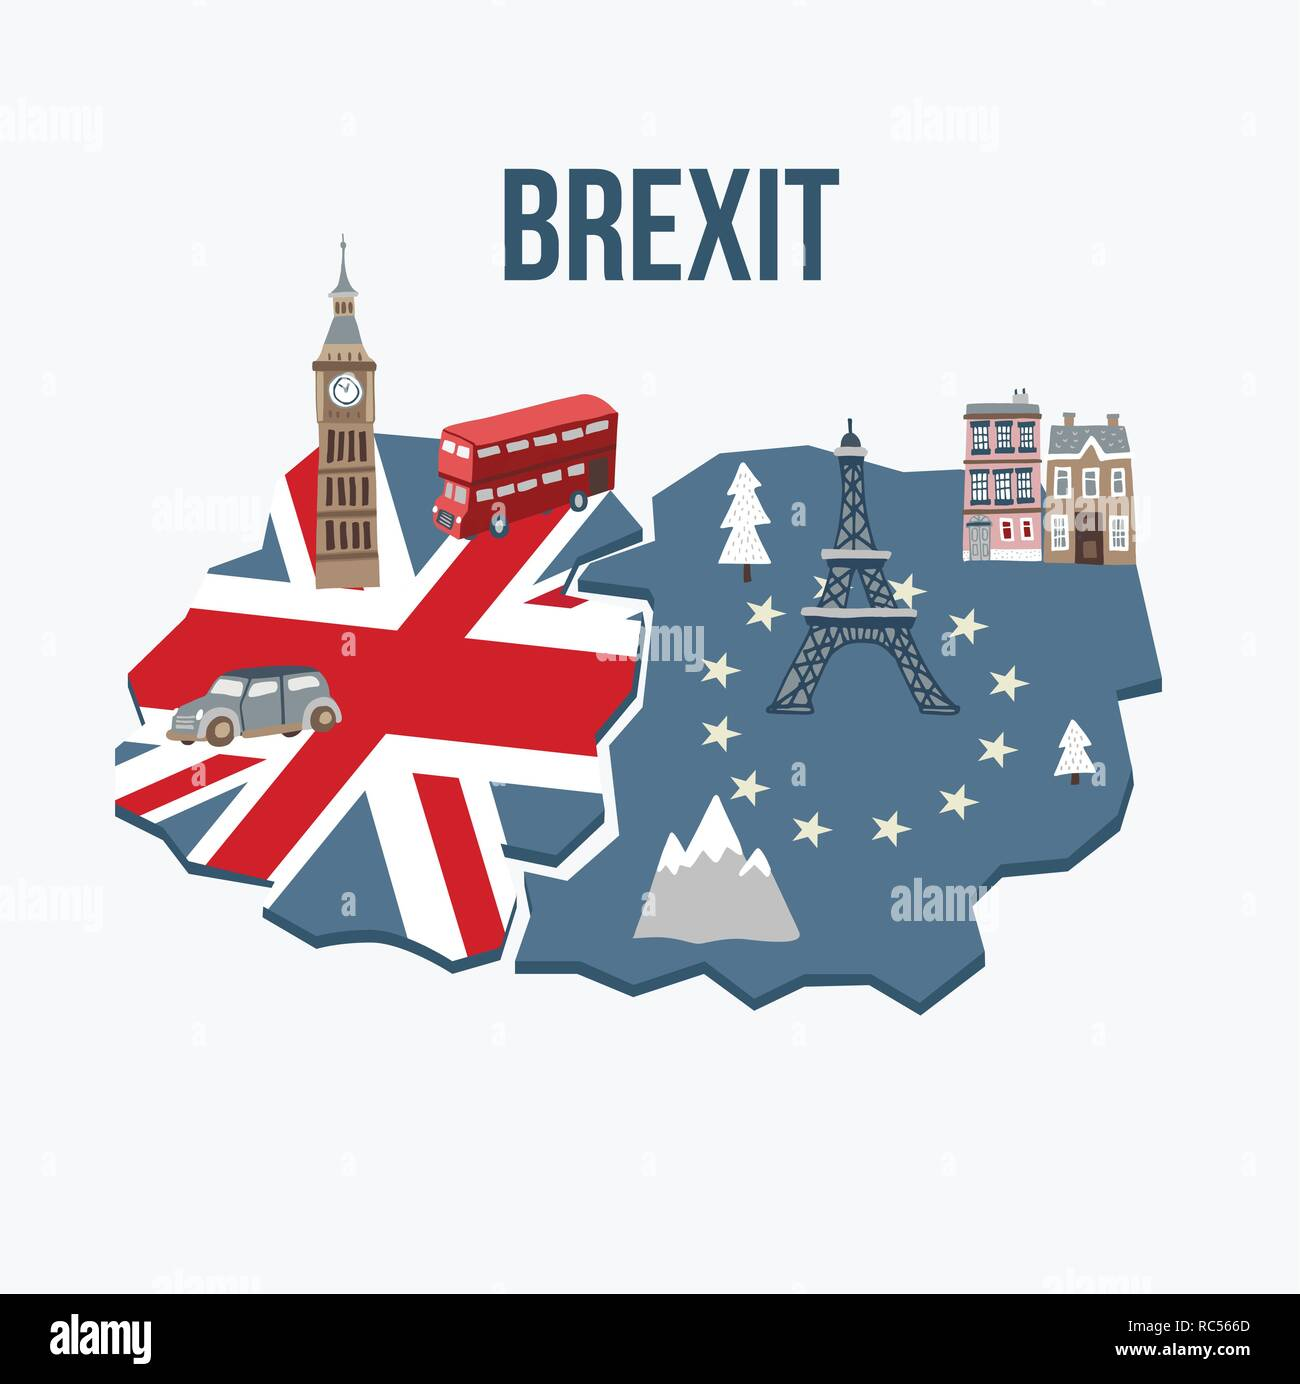 Brexit concept. Flags of the United Kingdom and the European Union on cracked map background. Possible exit of Great Britain from the EU. Symbols of London and continental Europe. Vector illustration. - Stock Image